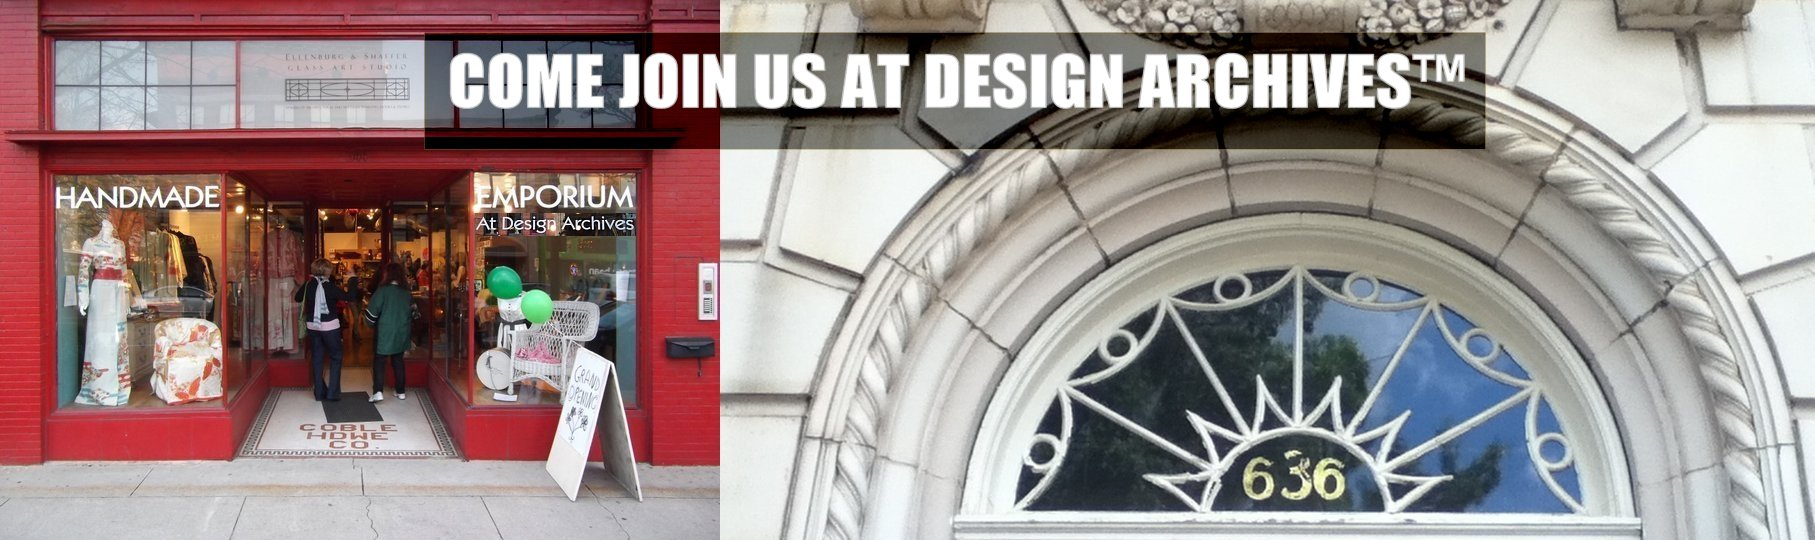 Join us at Design Archives